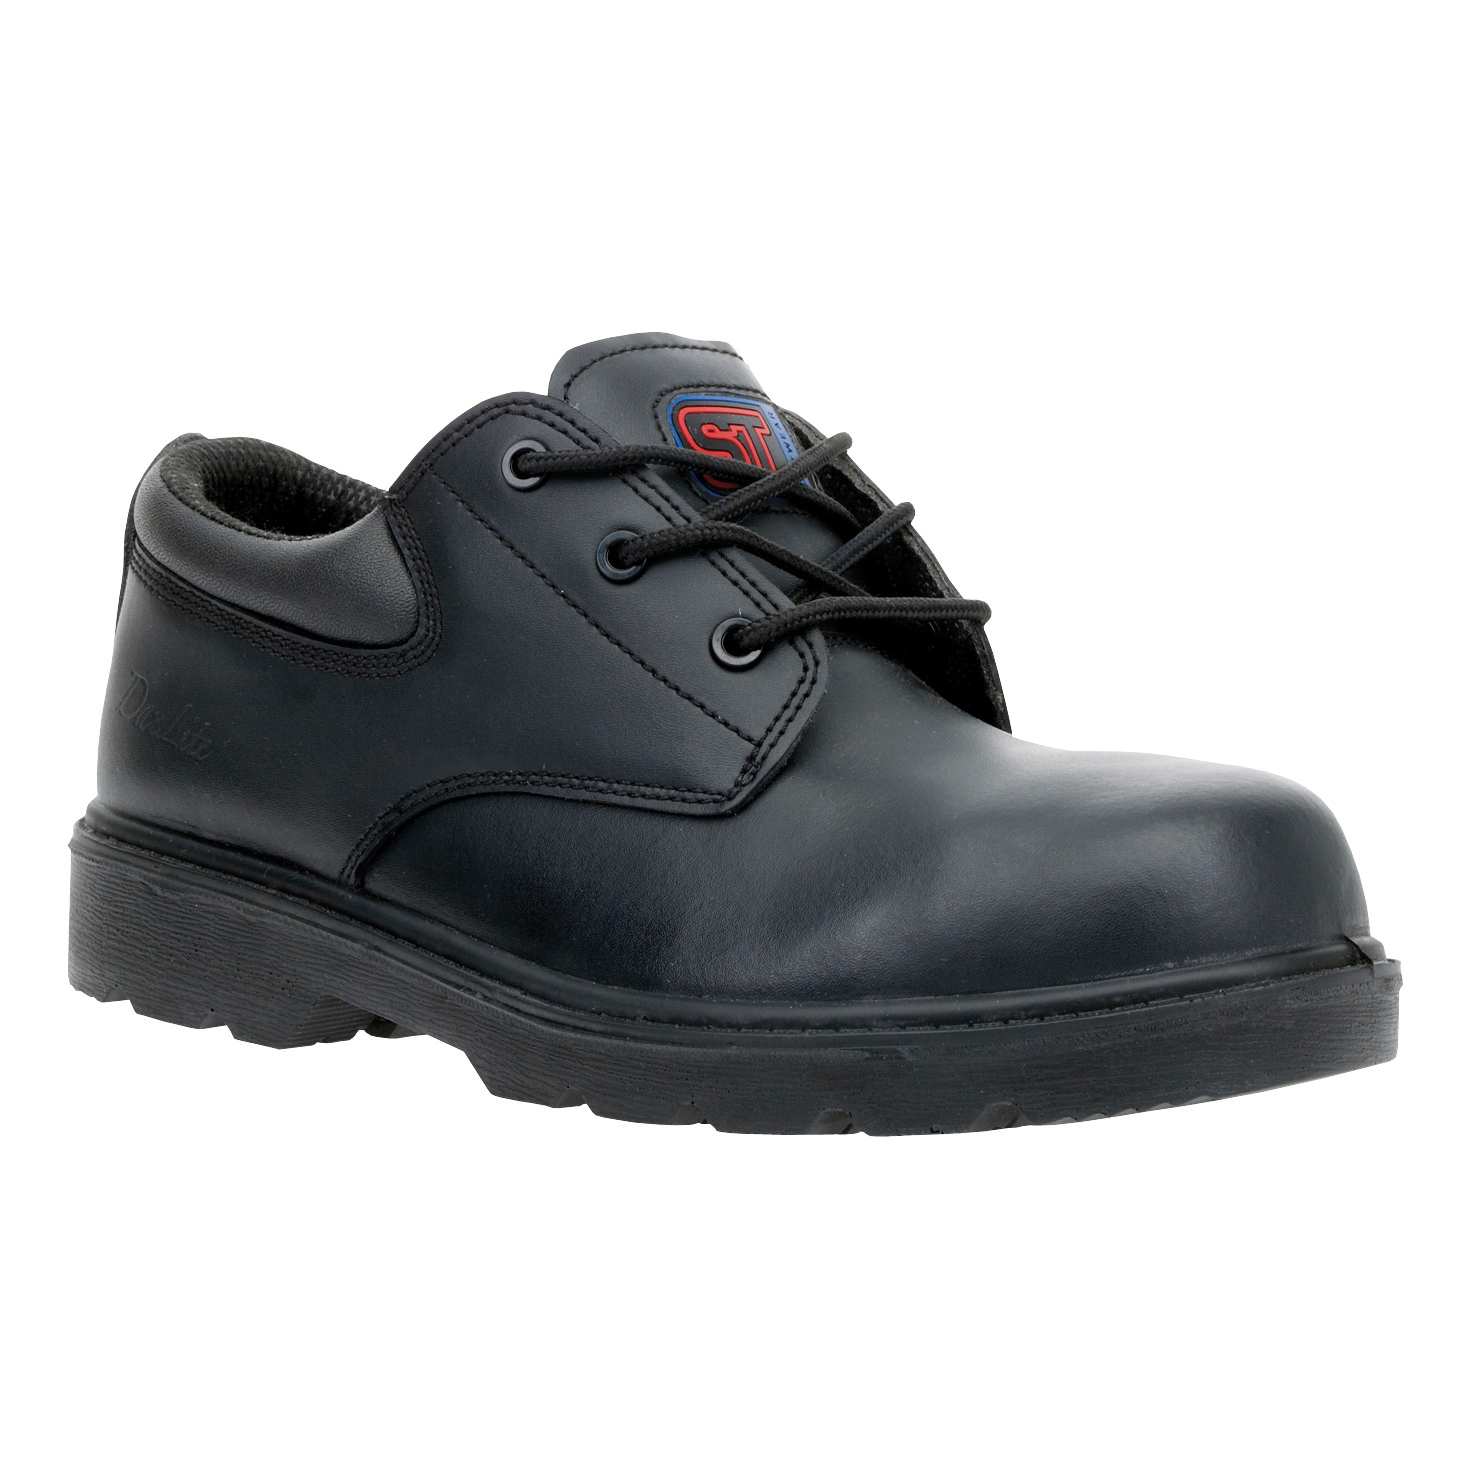 ST Dax Lite Air Comp' Shoe Metal Free Safety Toecap & Midsole Size 6 Blk Ref 90861 *Approx 3 Day L/Time*